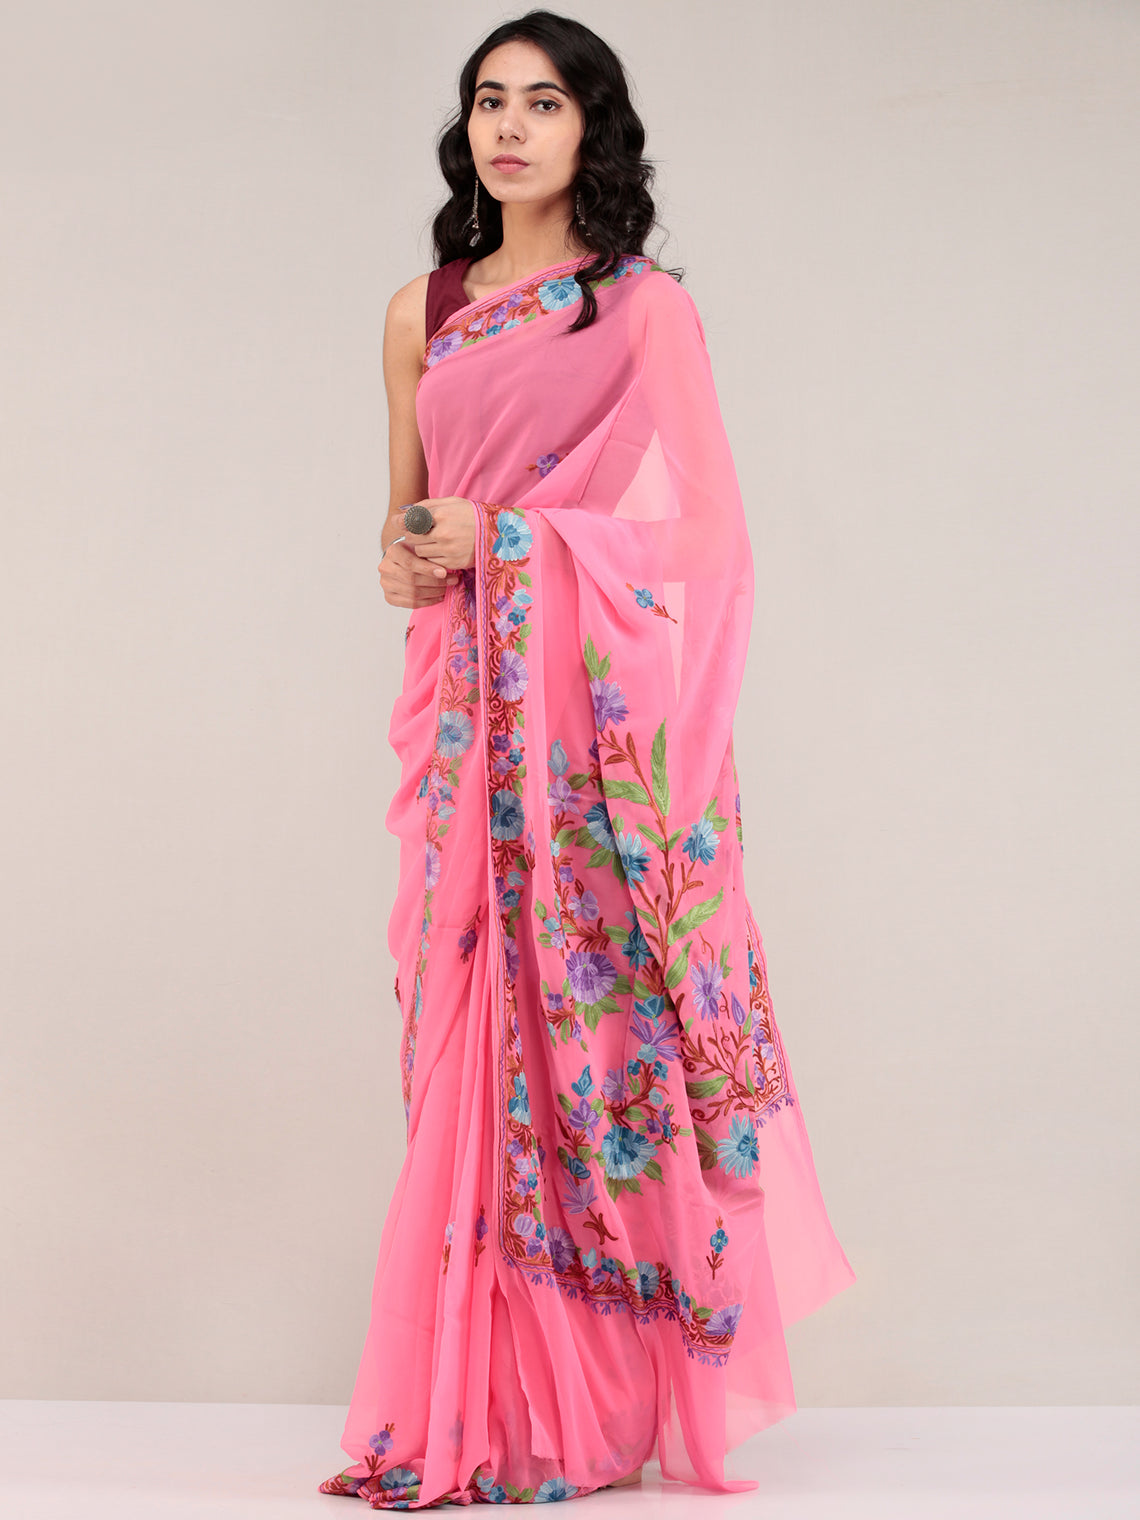 Pink Aari Embroidered Georgette Saree From Kashmir - S031704673